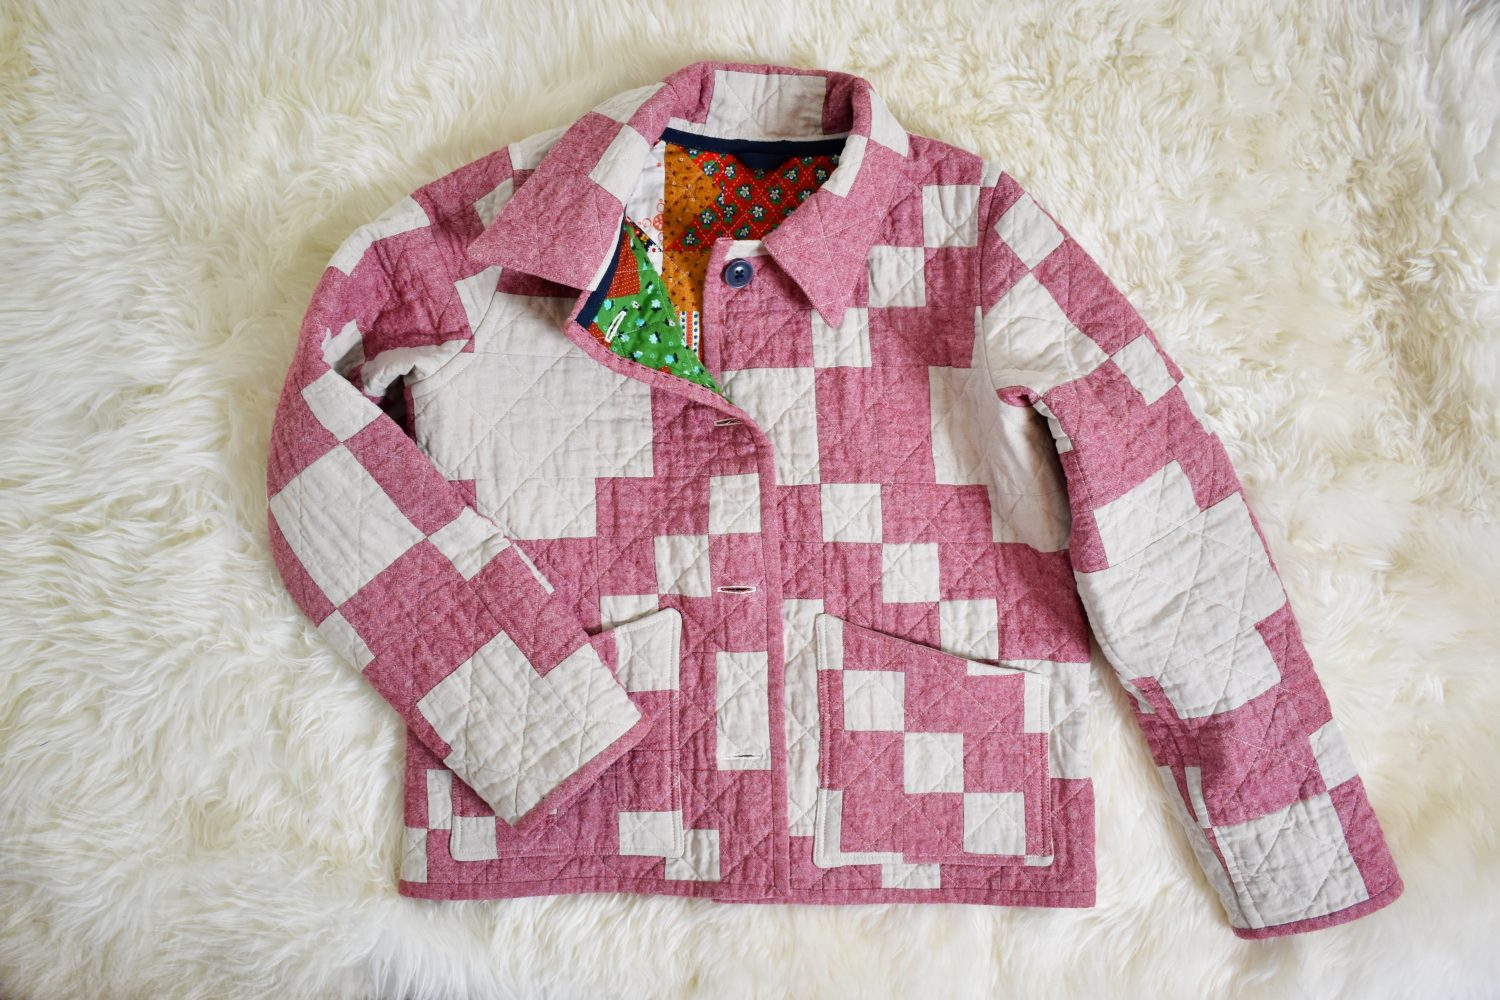 The Patchwork Chore Coat pattern makes a great modern and stylish quilt coat!